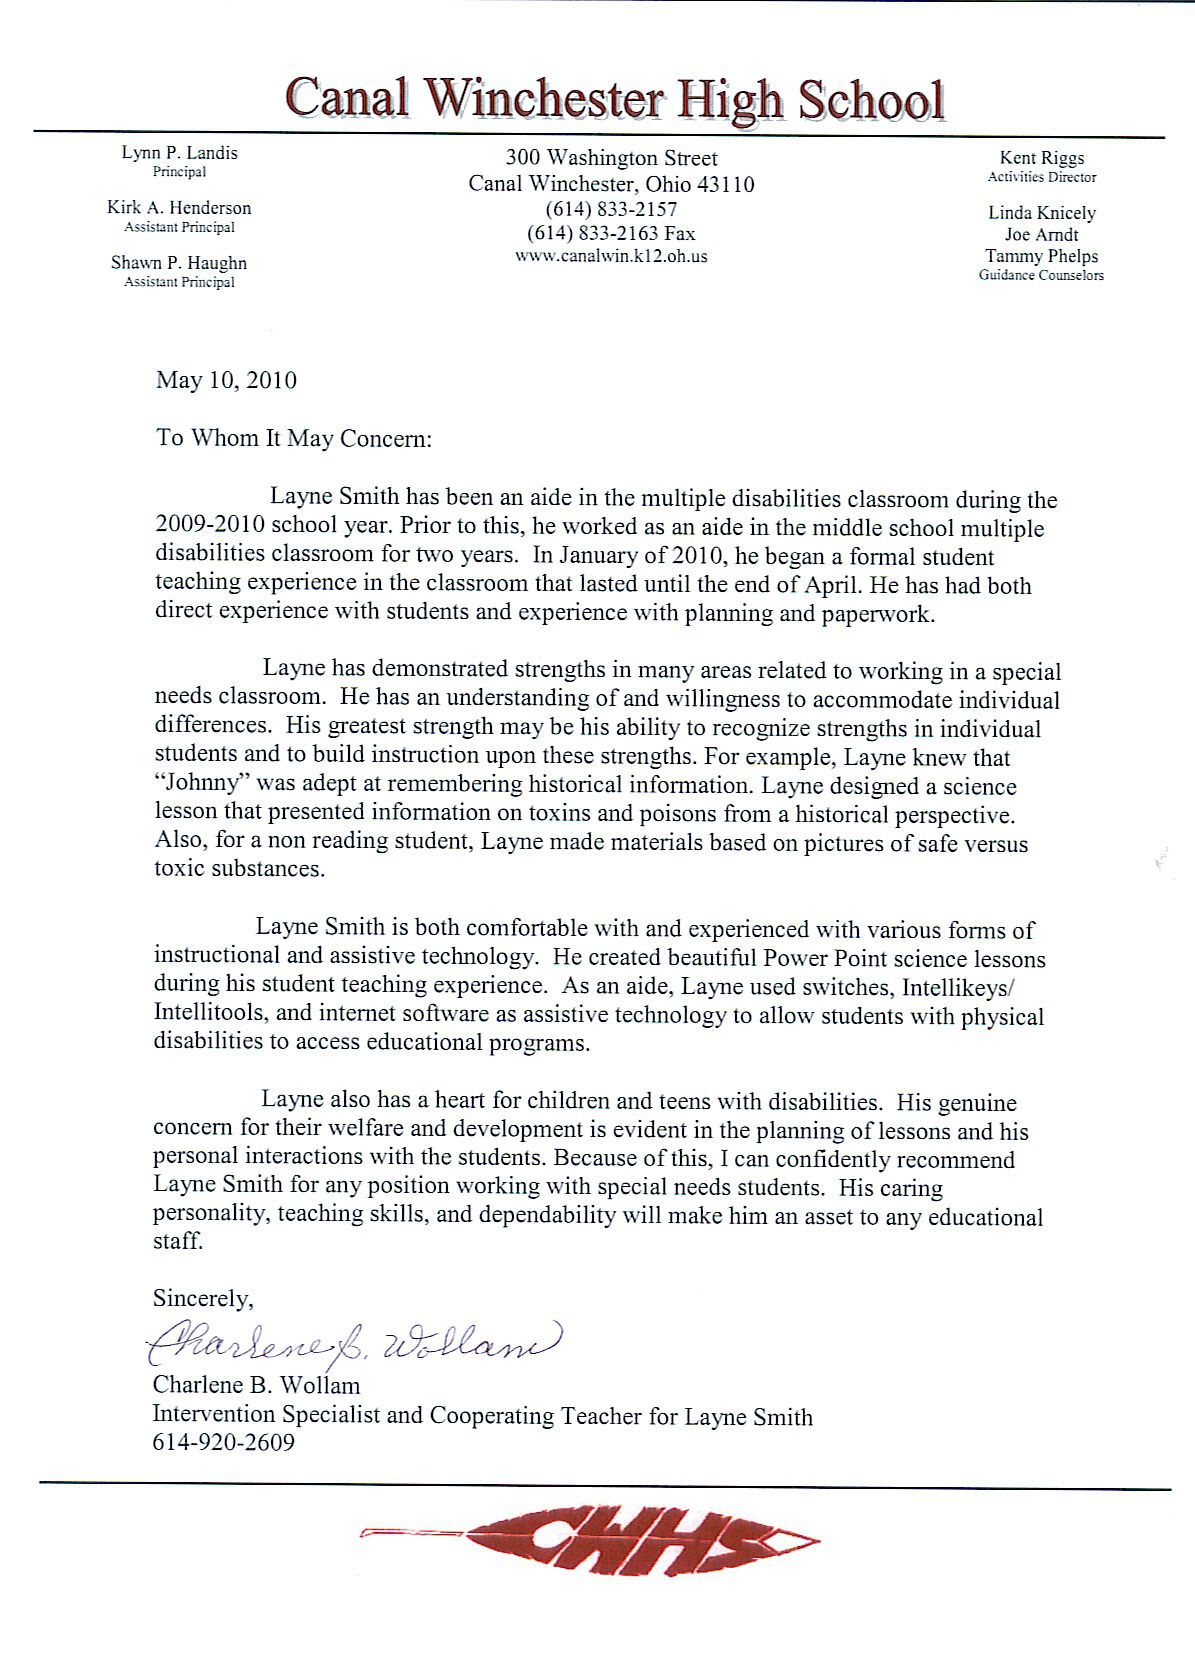 005 Magnificent Letter Of Recommendation For Student Teacher From Cooperating Template High Resolution Full